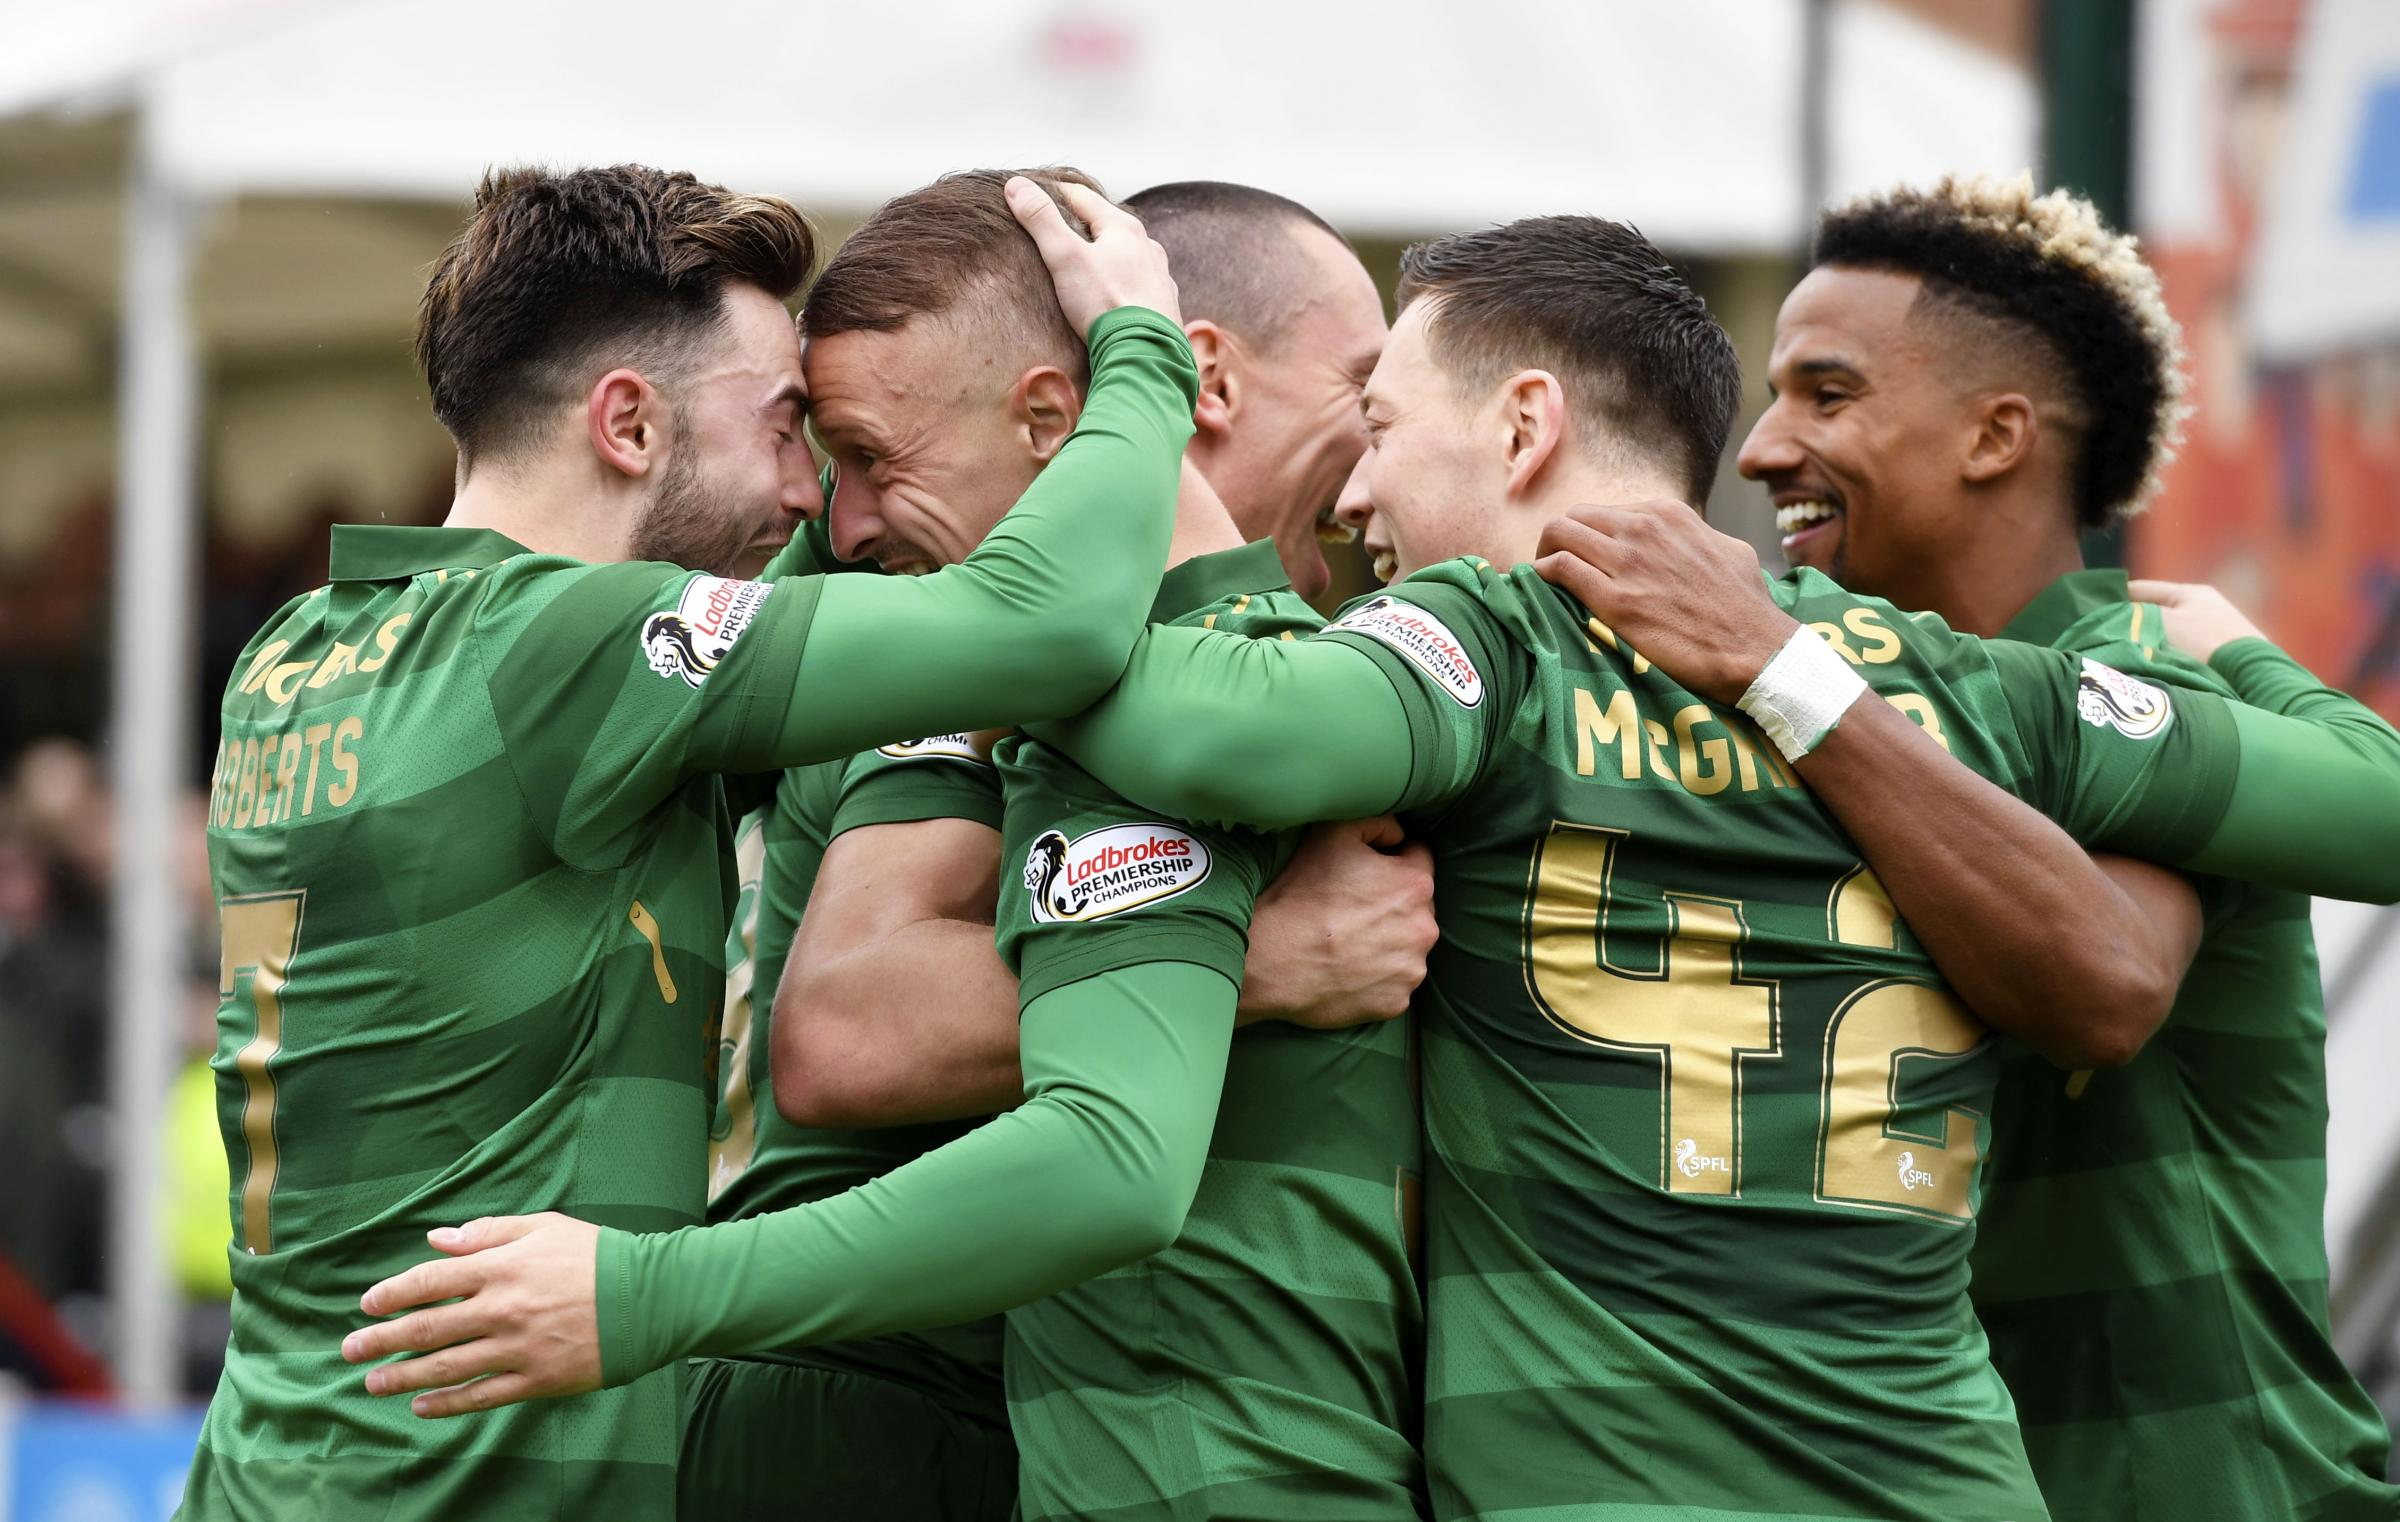 Celtic en route to Scottish treble after Rangers rout in Cup semis